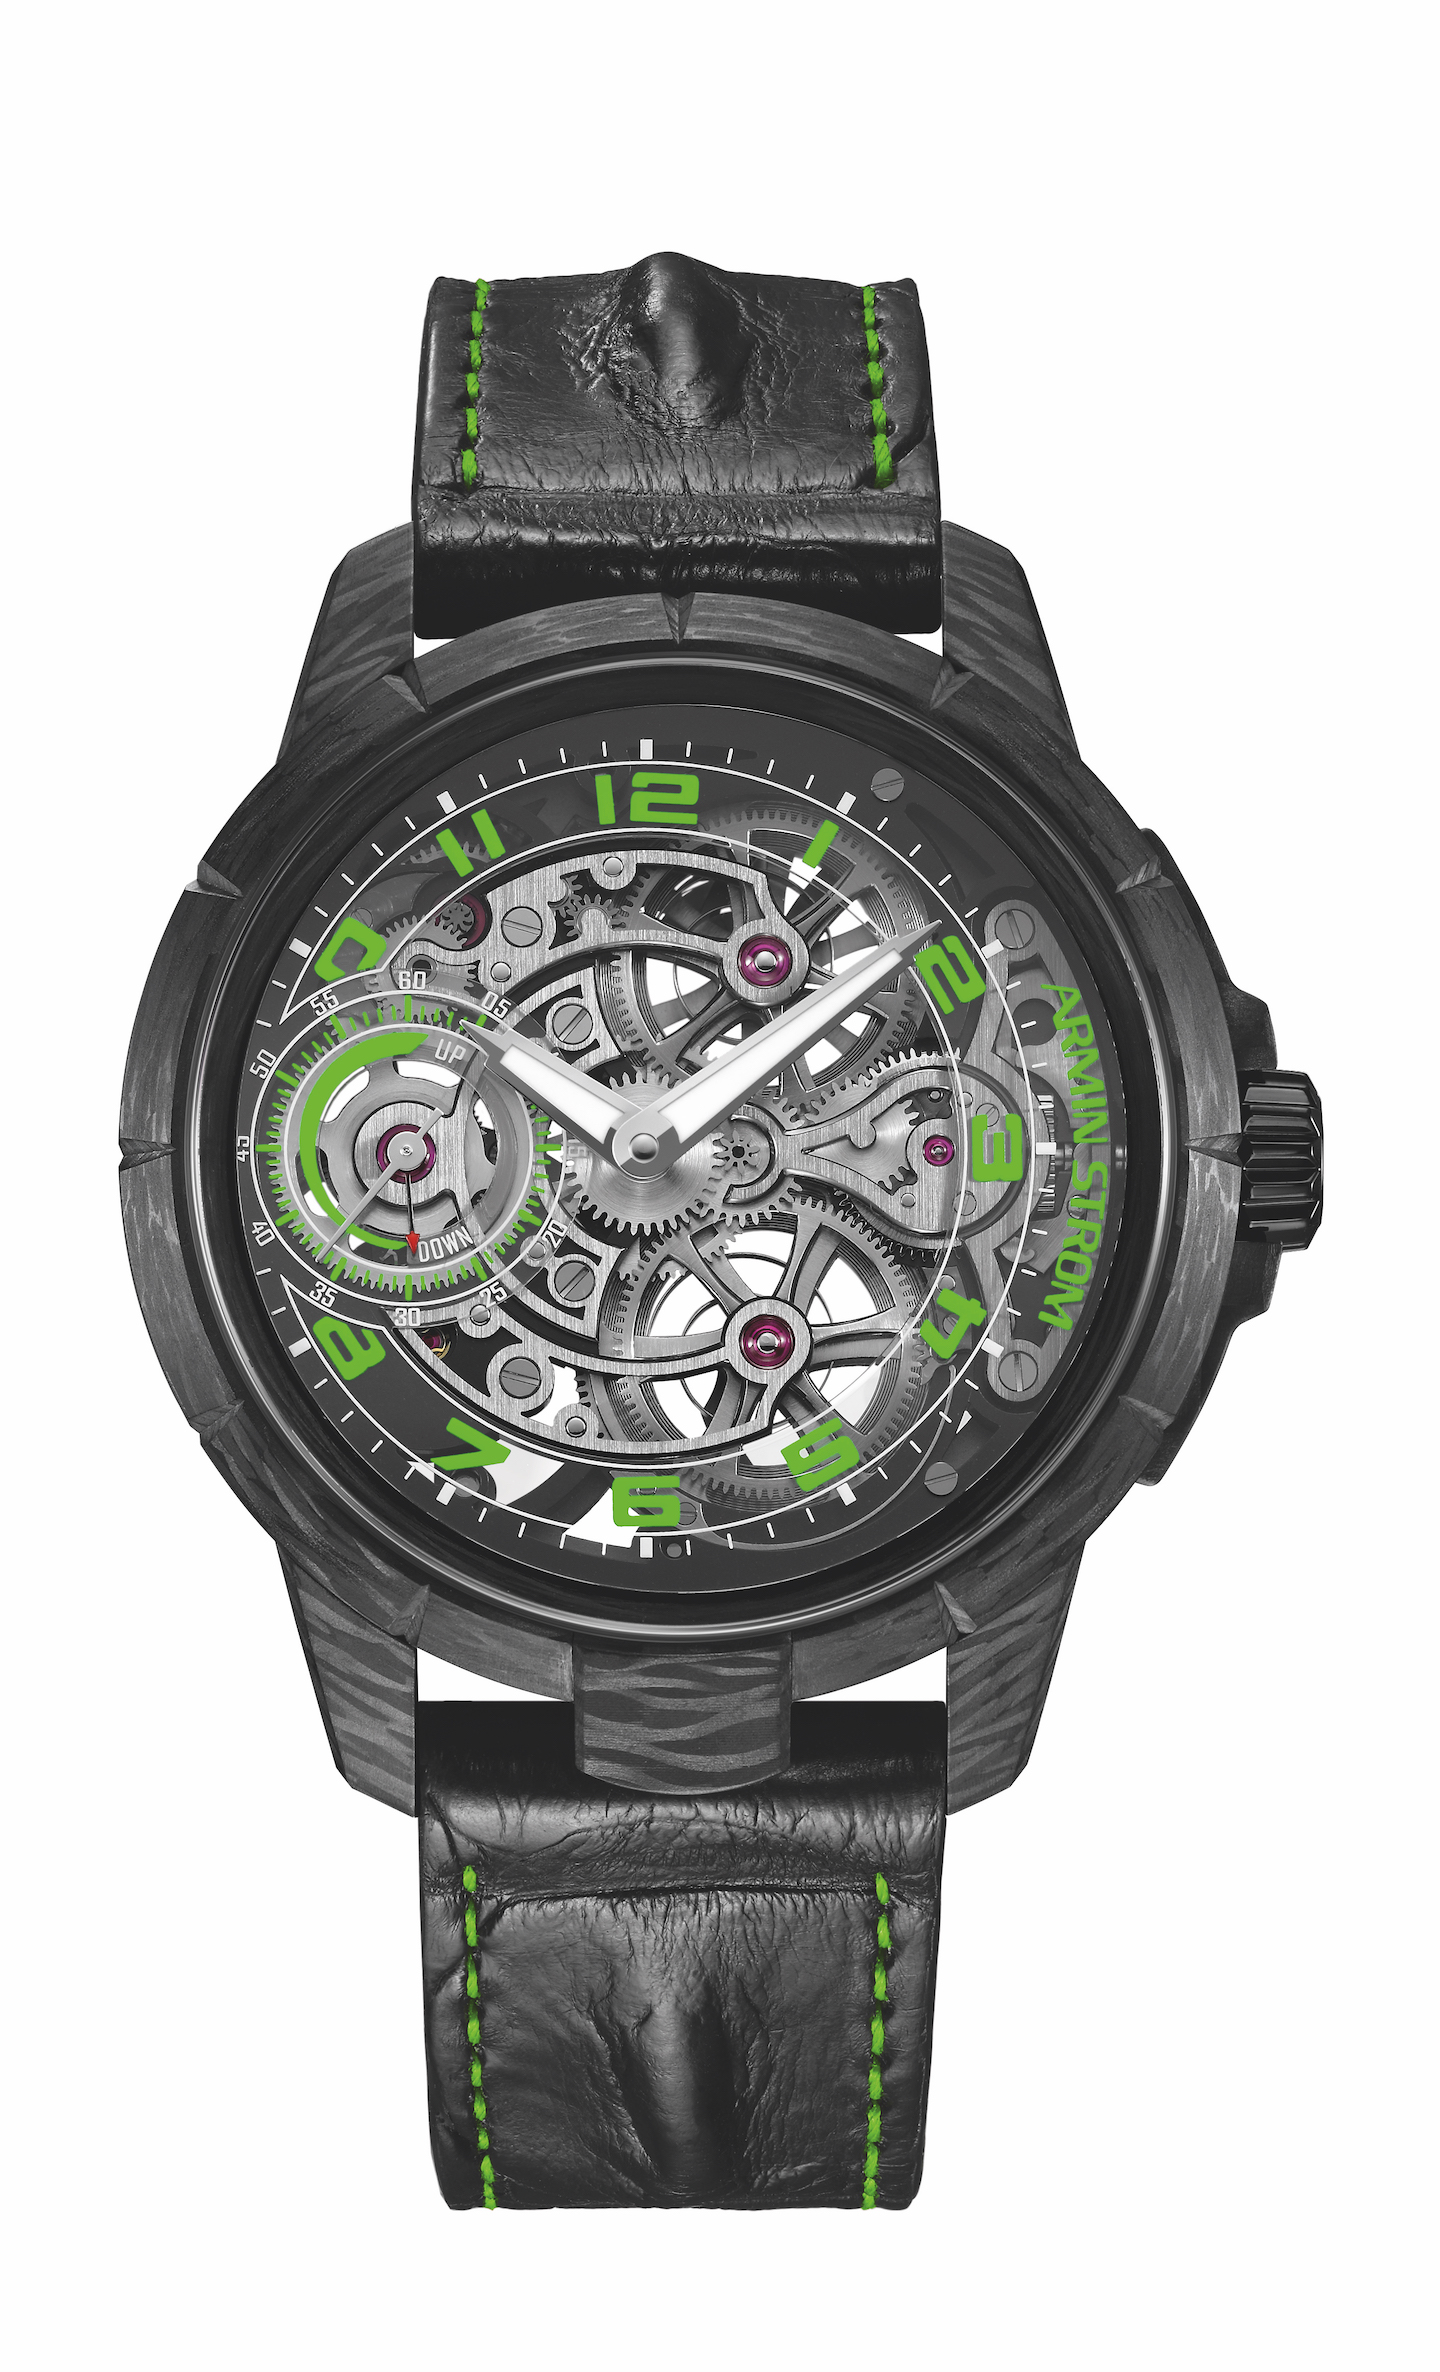 Armin Strom Skeleton Karbon watches